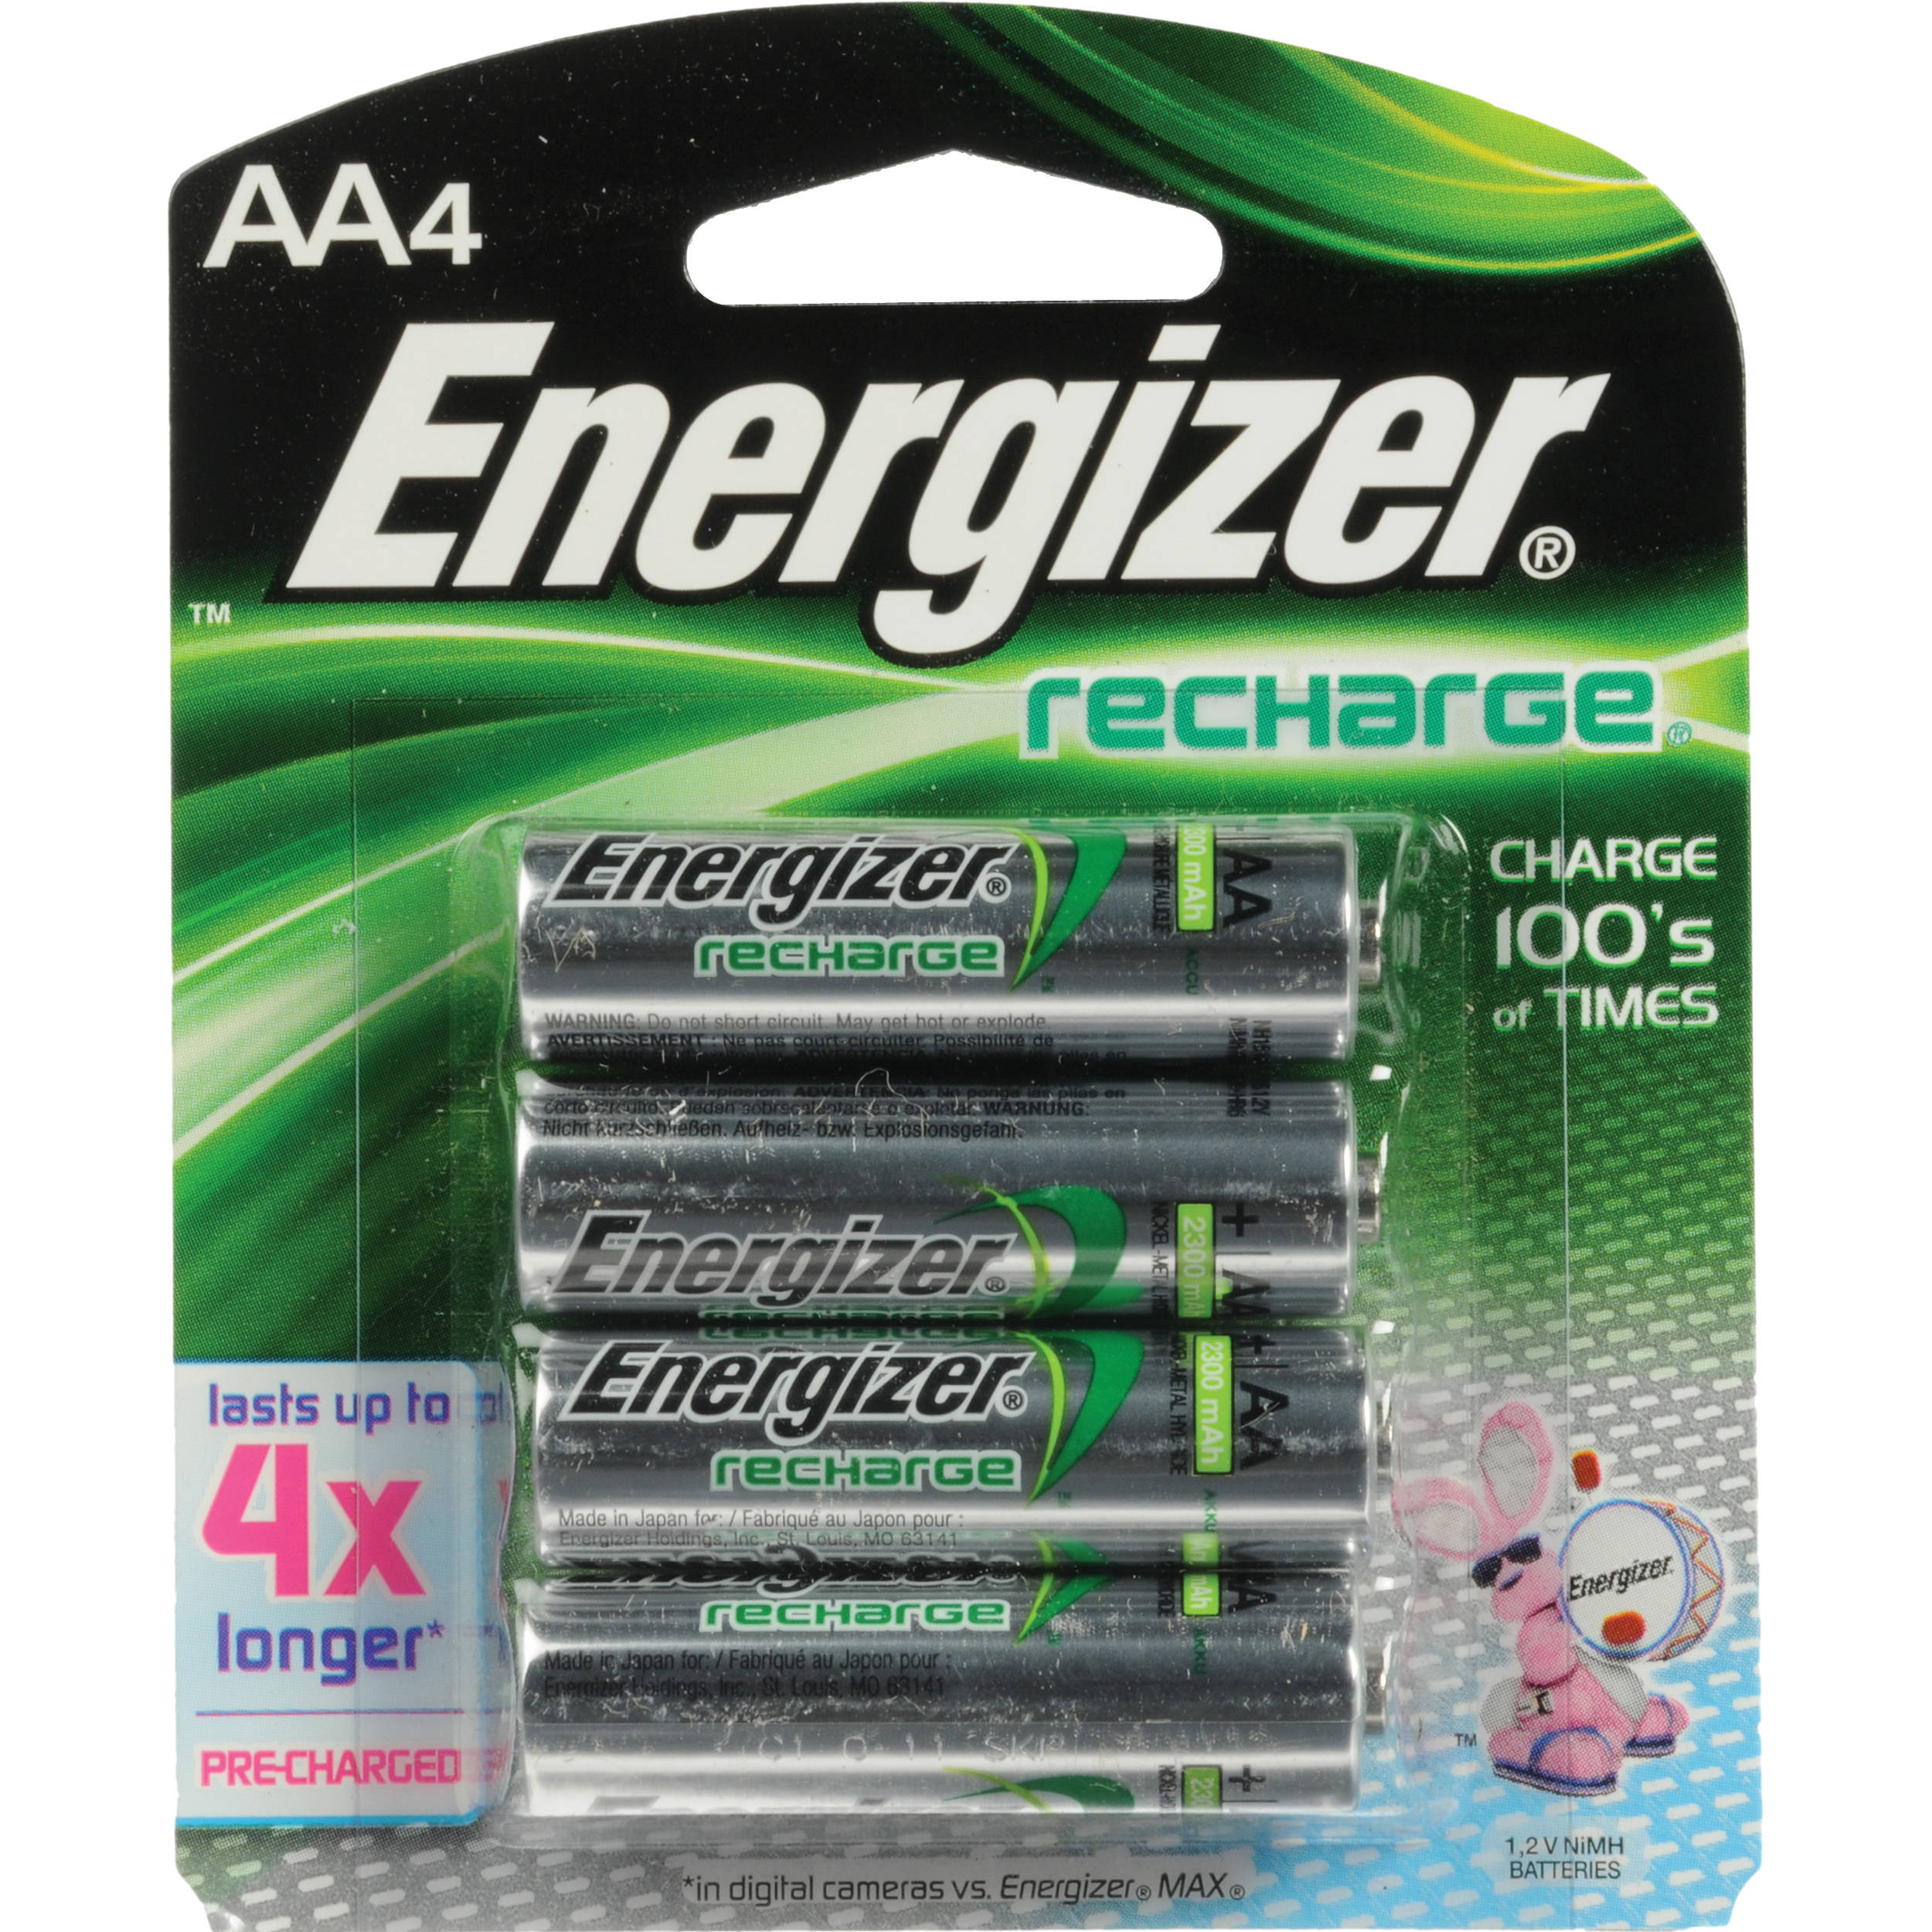 Energizer AA NiMH Rechargeable Batteries 2300mAh 4 Pack